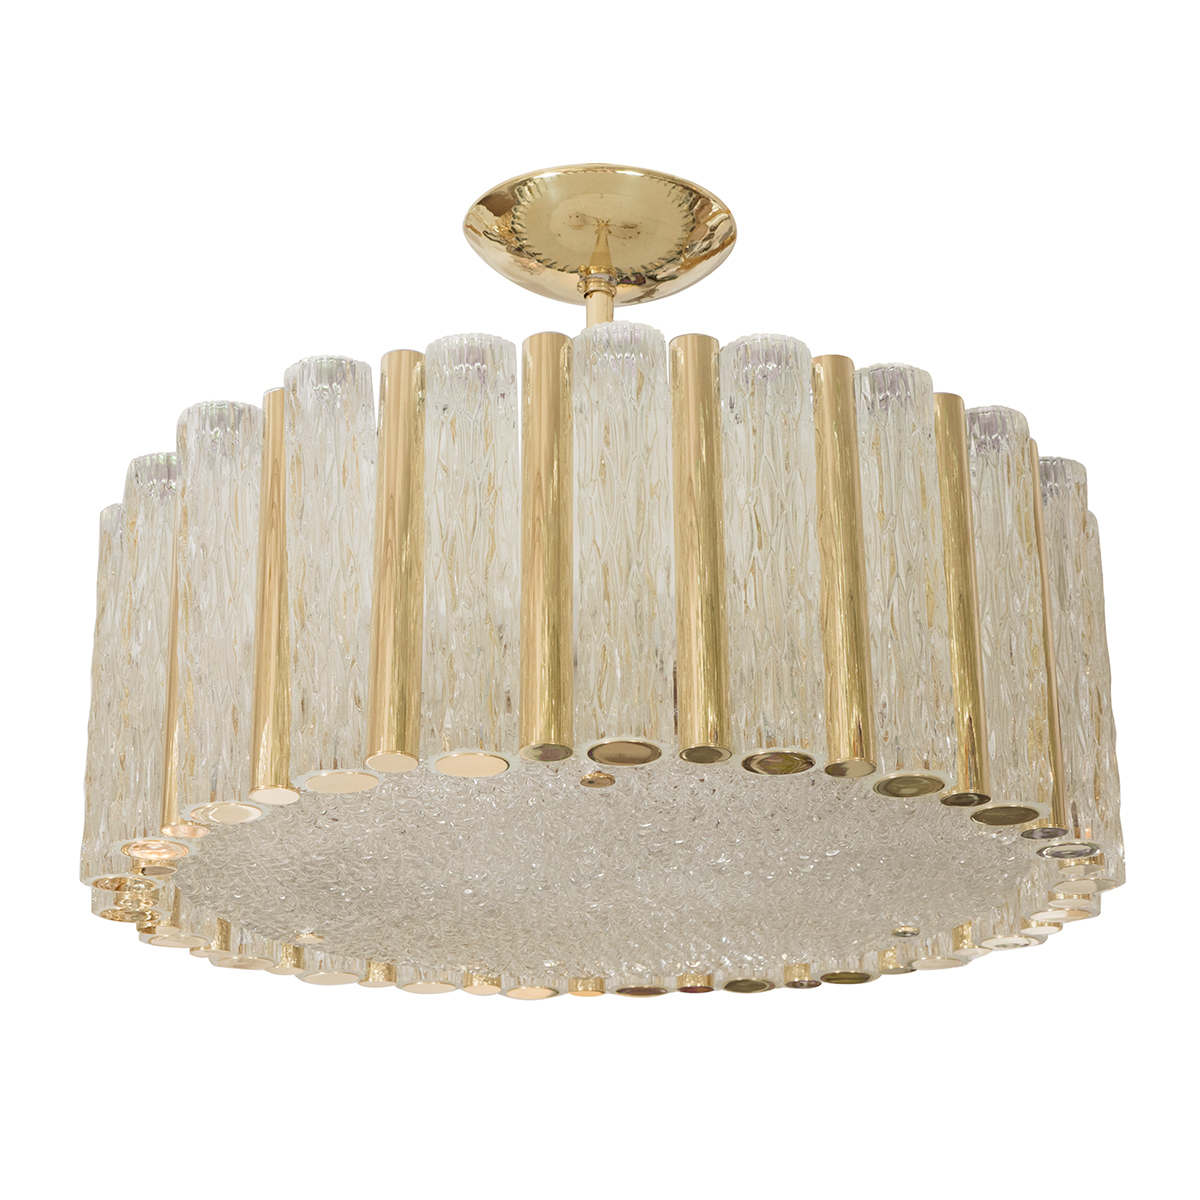 Large Brass Drum Form Pendant Fixture With Tubular Glass